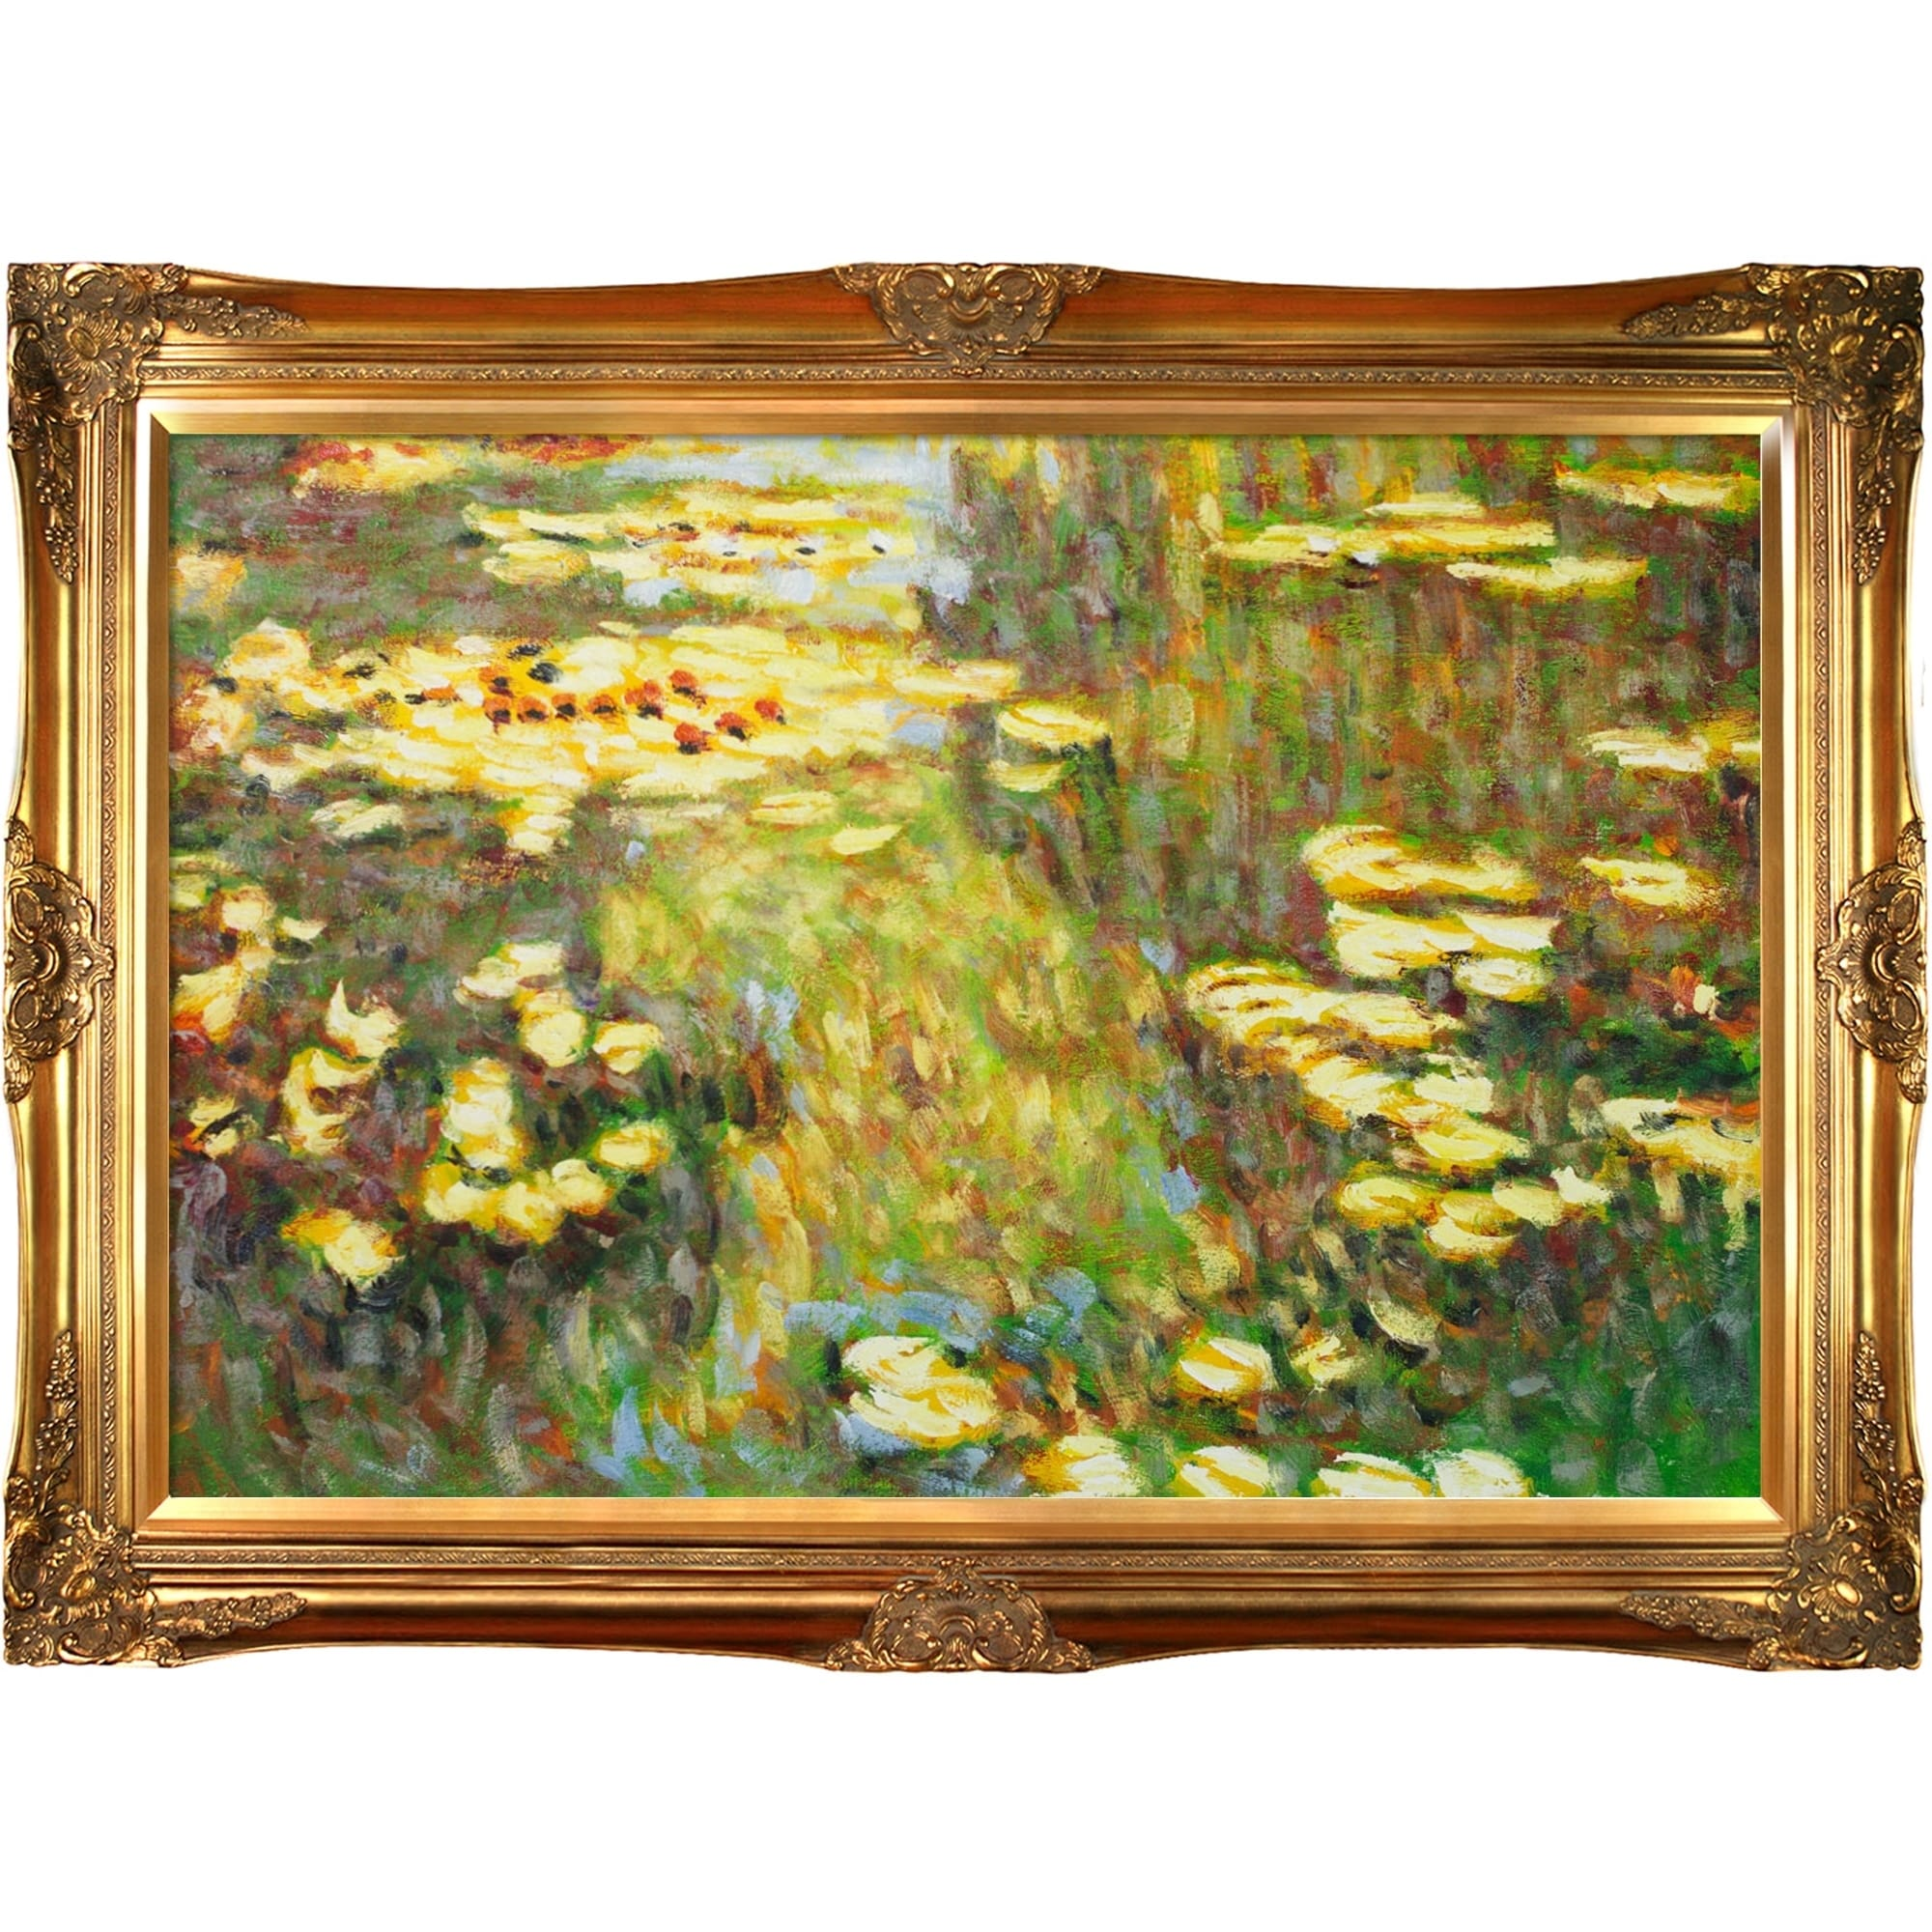 La Pastiche By Overstockart Water Lilies By Claude Monet With Gold Victorian Frame Oil Painting Wall Art 44 X 32 On Sale Overstock 28492401